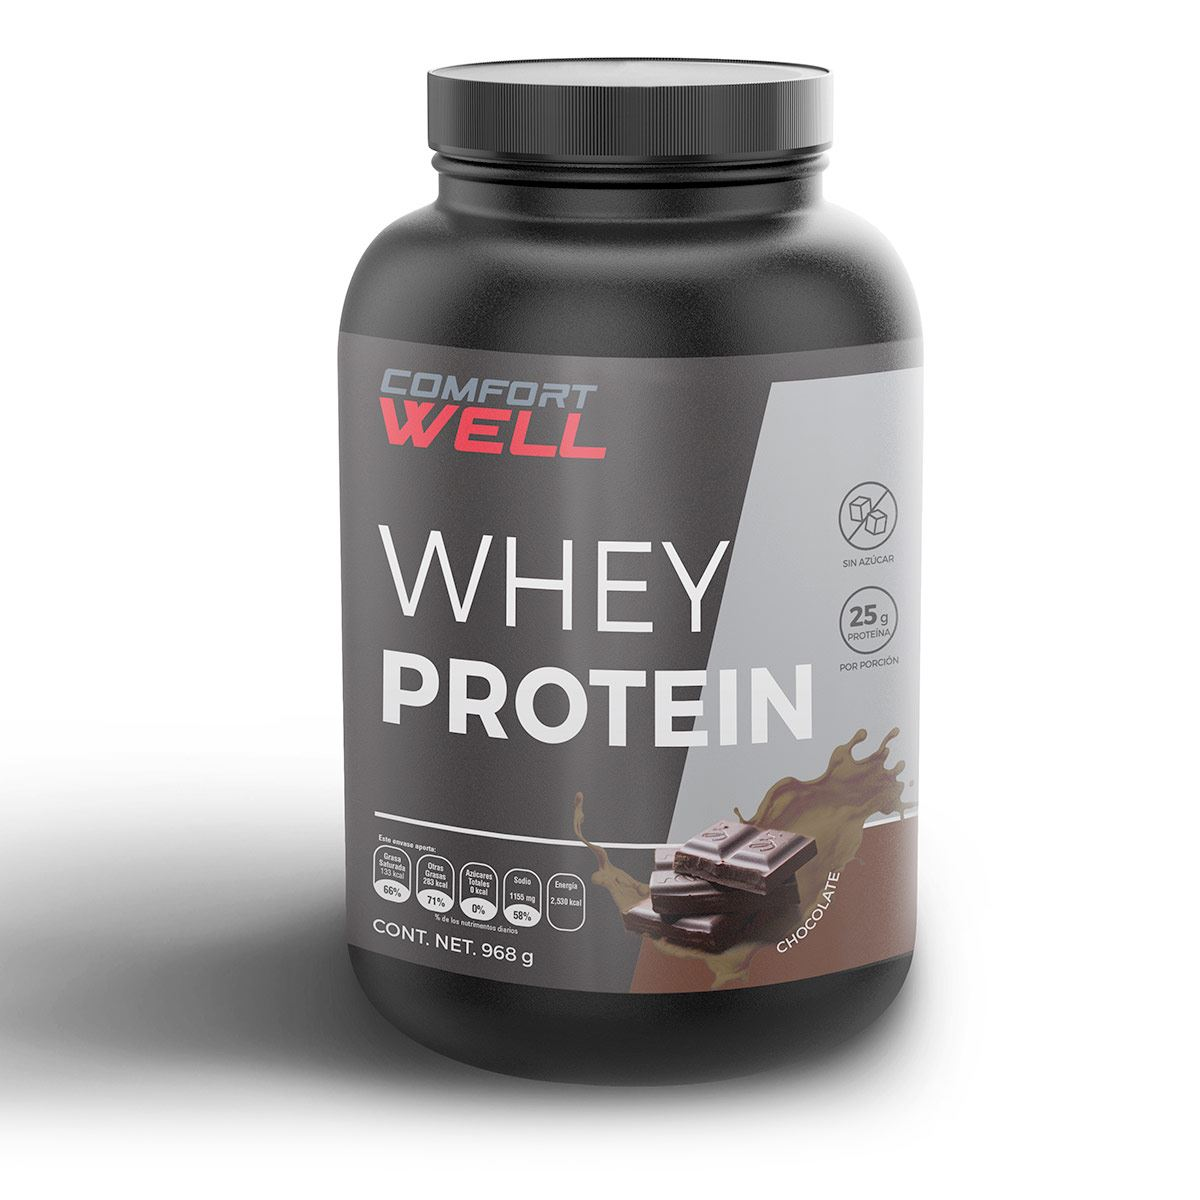 Proteína sabor chocolate (Whey Protein) Comfort Well